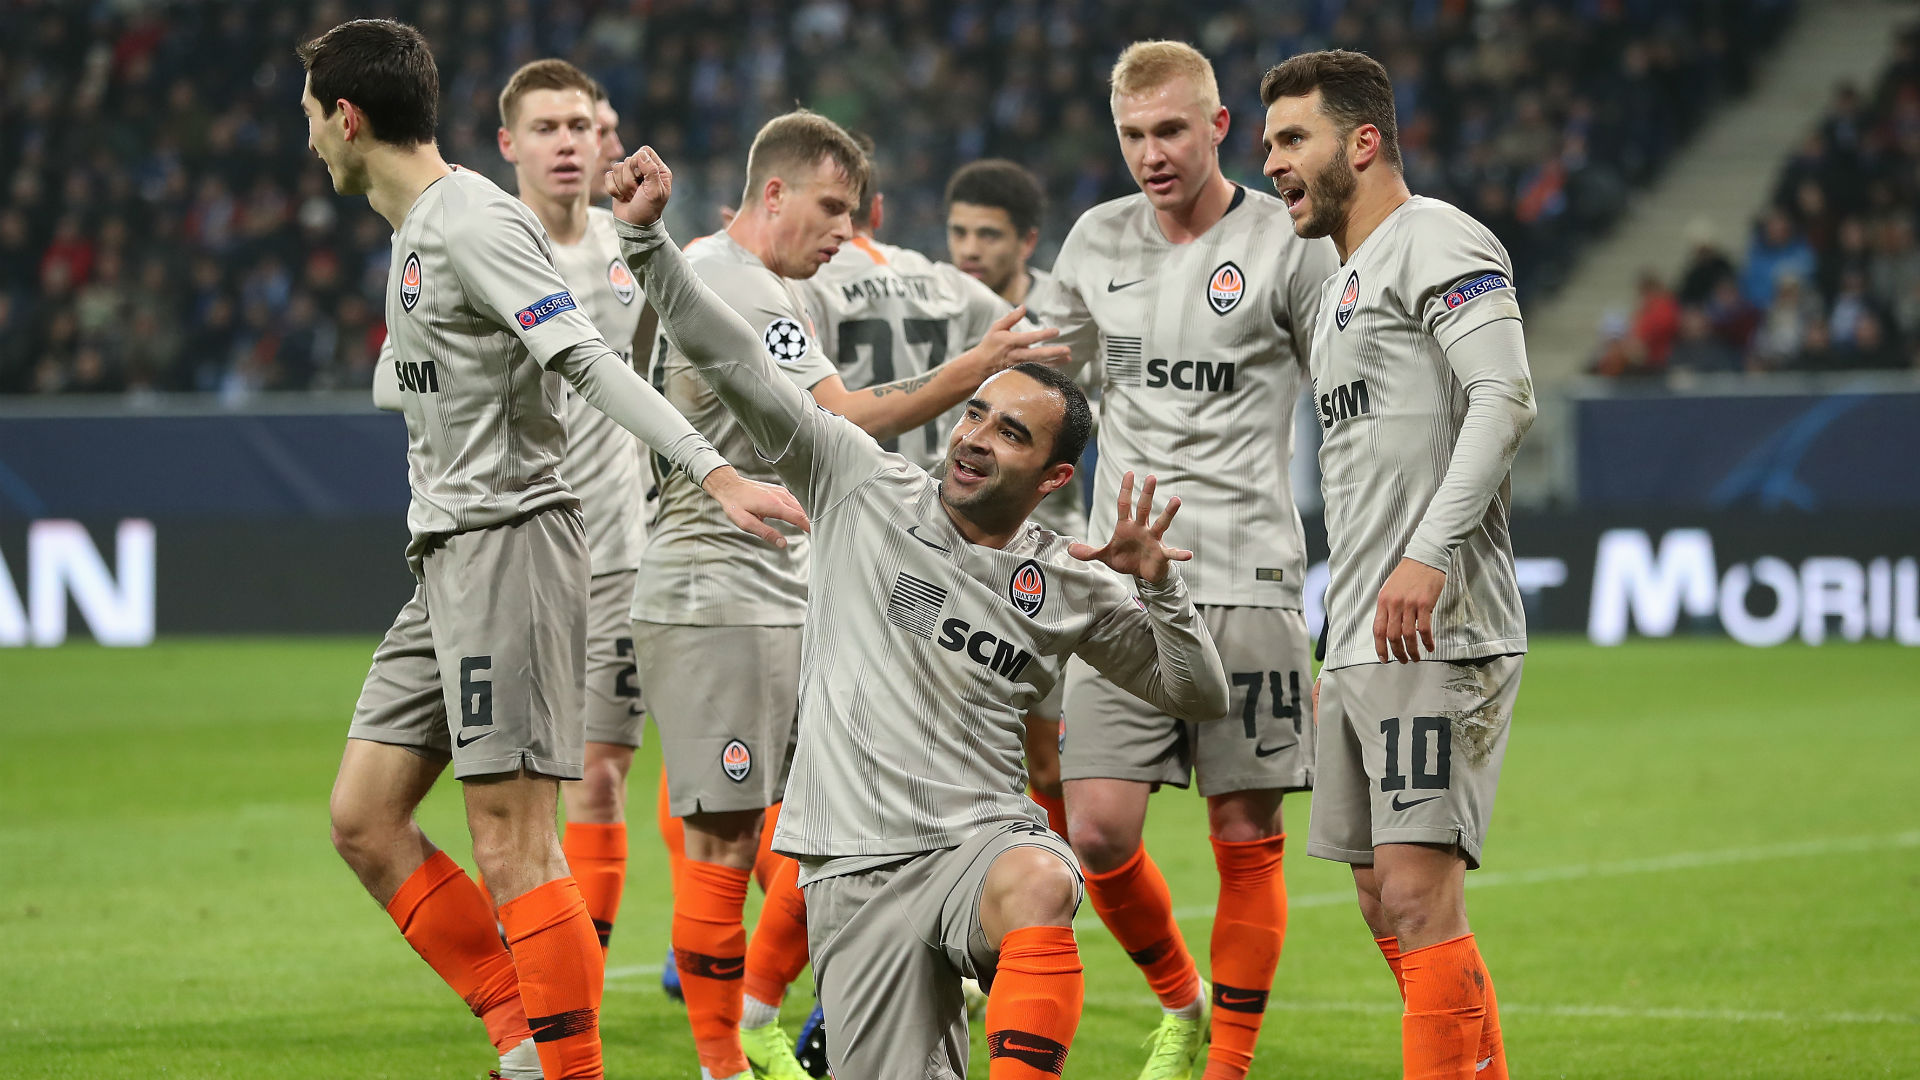 Betting Tips for Today: Goals galore expected as Shakhtar Donetsk host Lyon